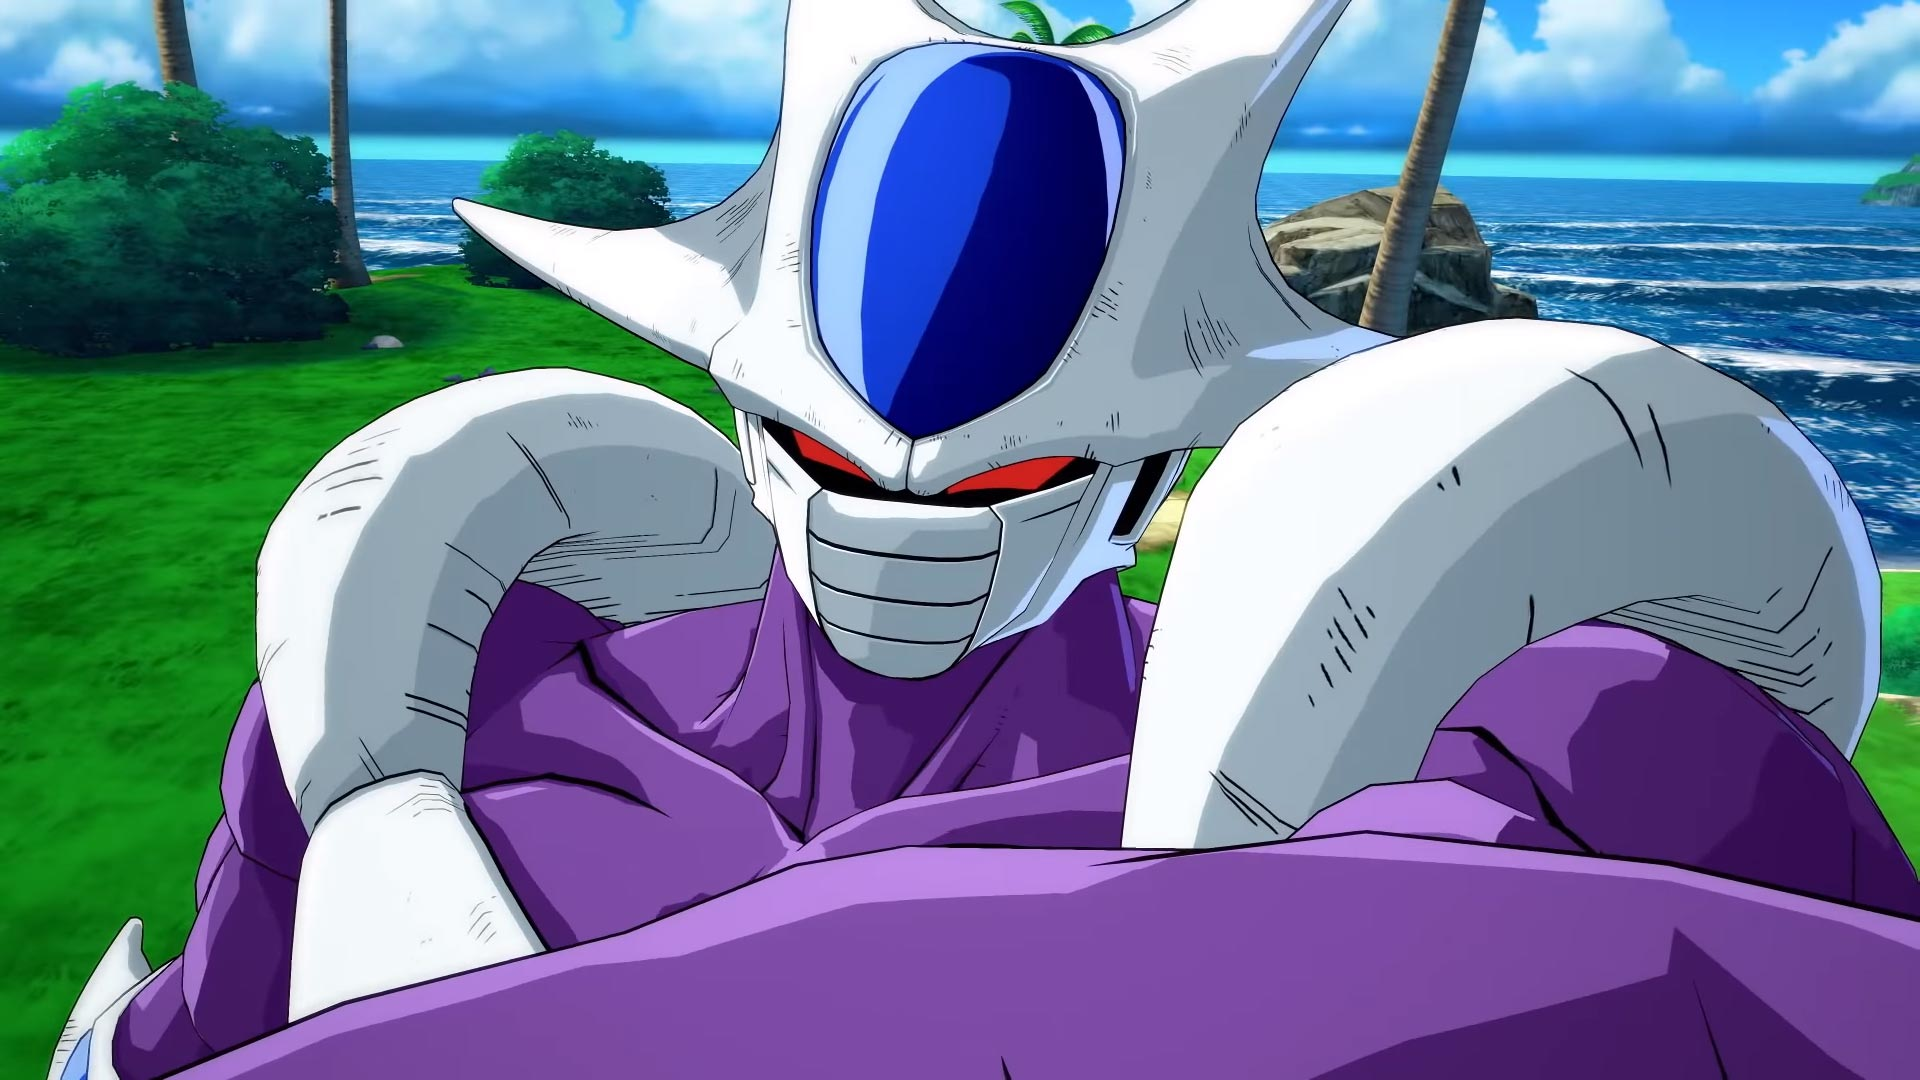 Cooler in Dragon Ball FighterZ 9 out of 9 image gallery